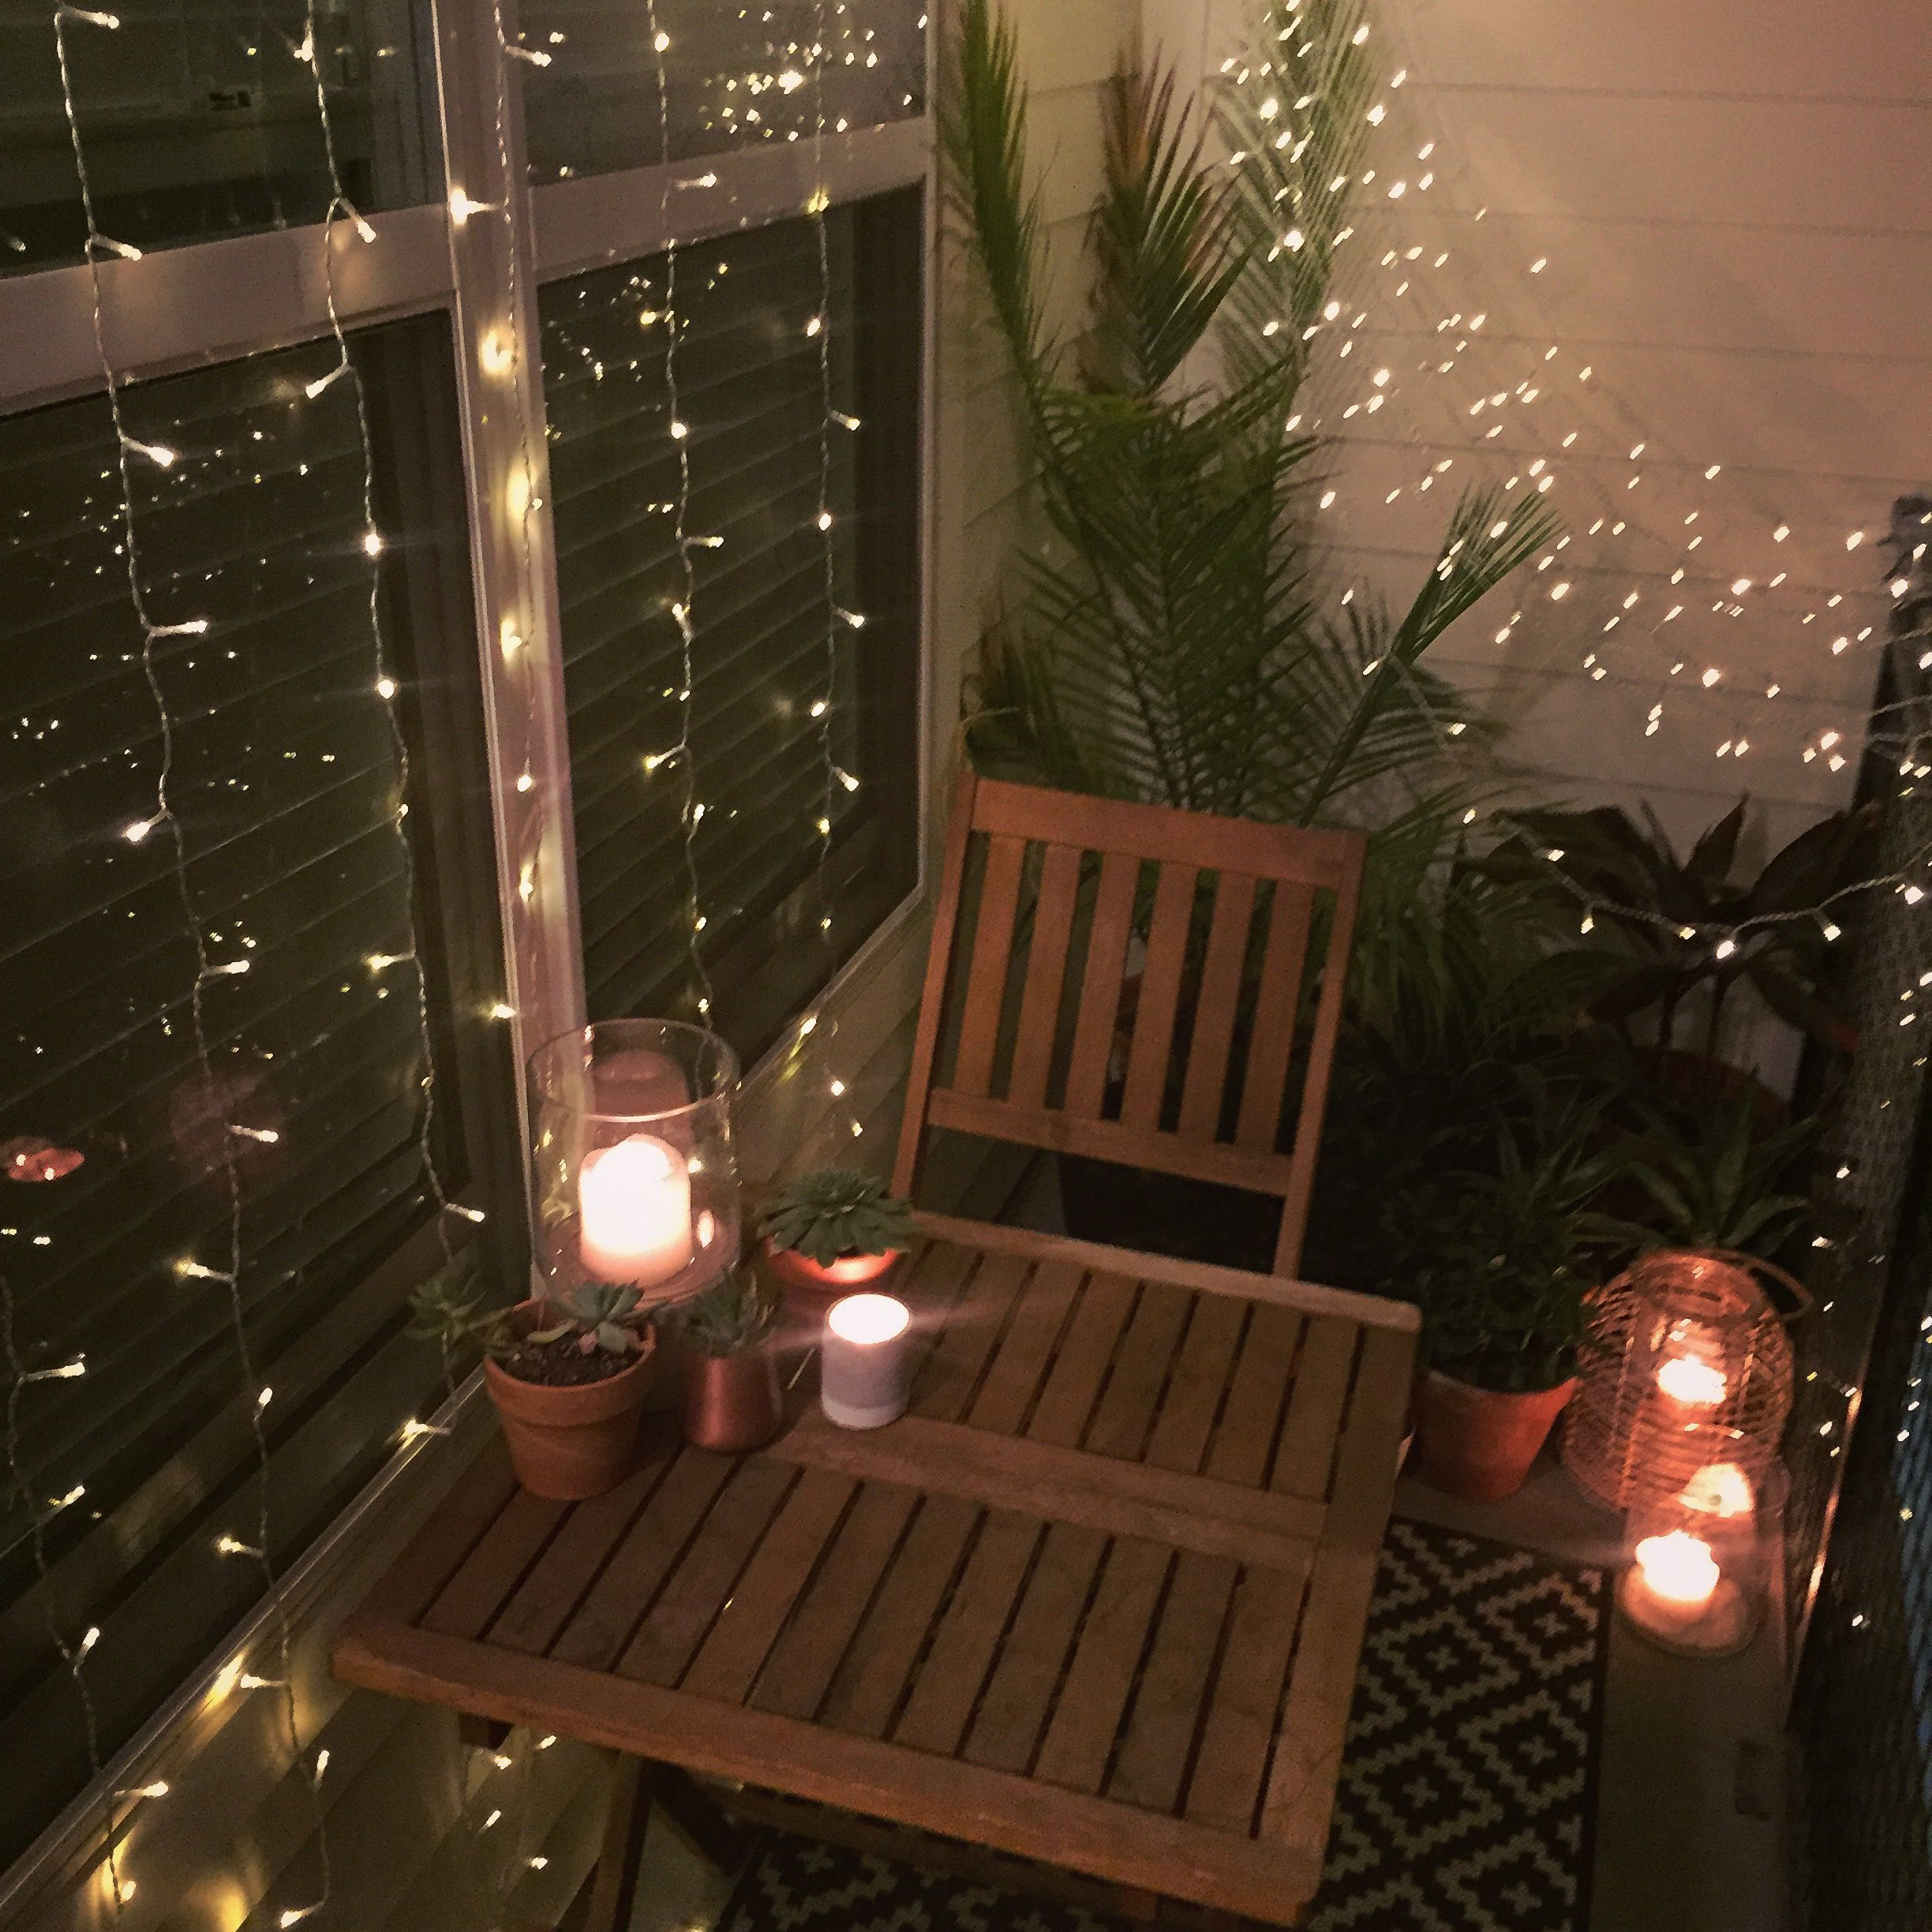 Balcony Lighting Ideas Small Balcony Decor Ideas For An Apartment Hanging String